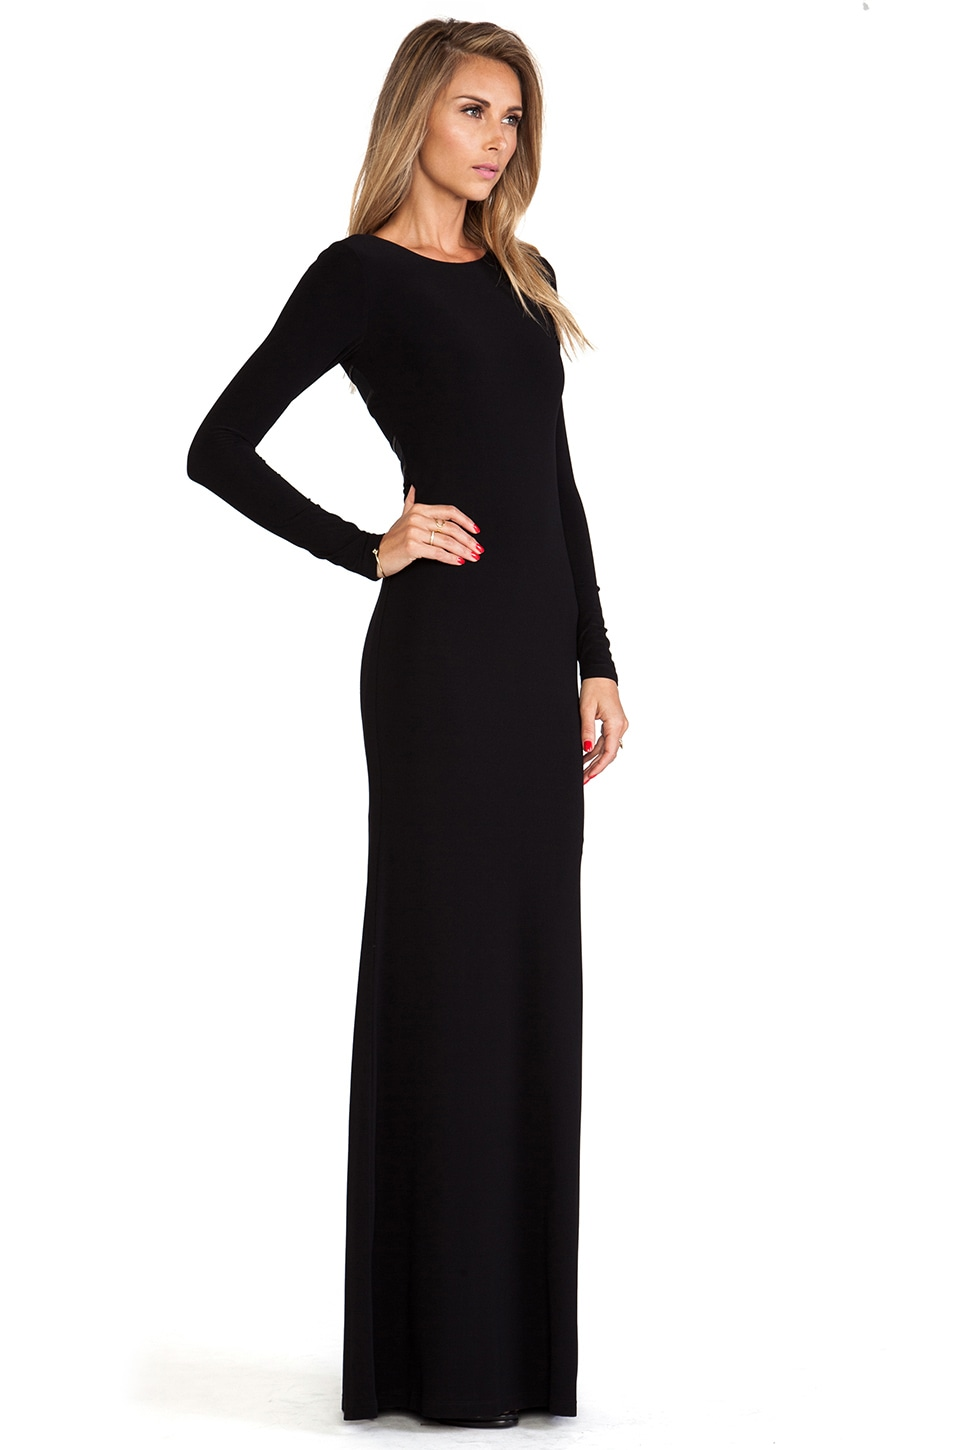 Plain black long sleeve maxi dress - Best dress image